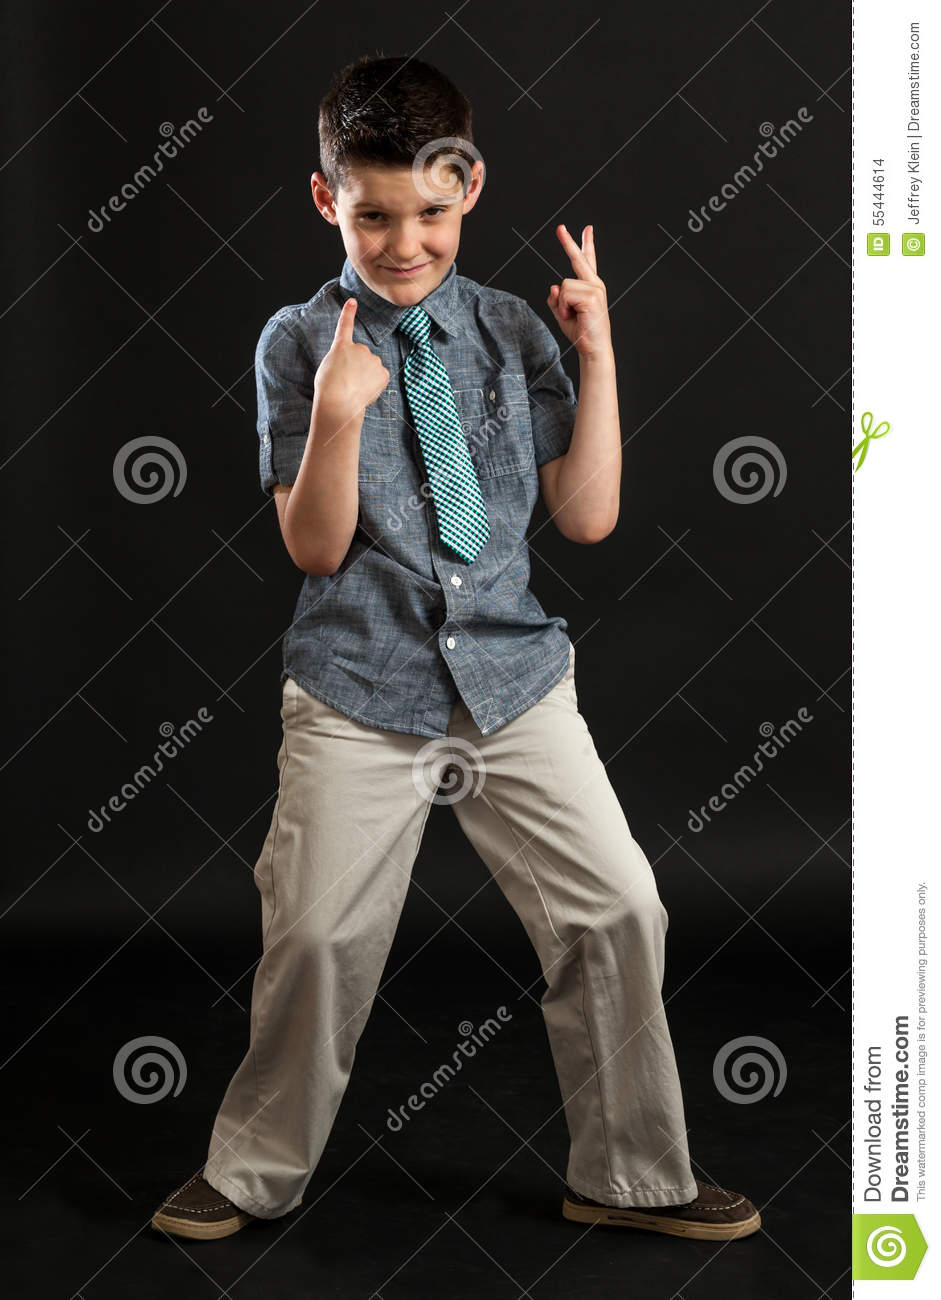 young boy point to self making peace sign stock photo image of